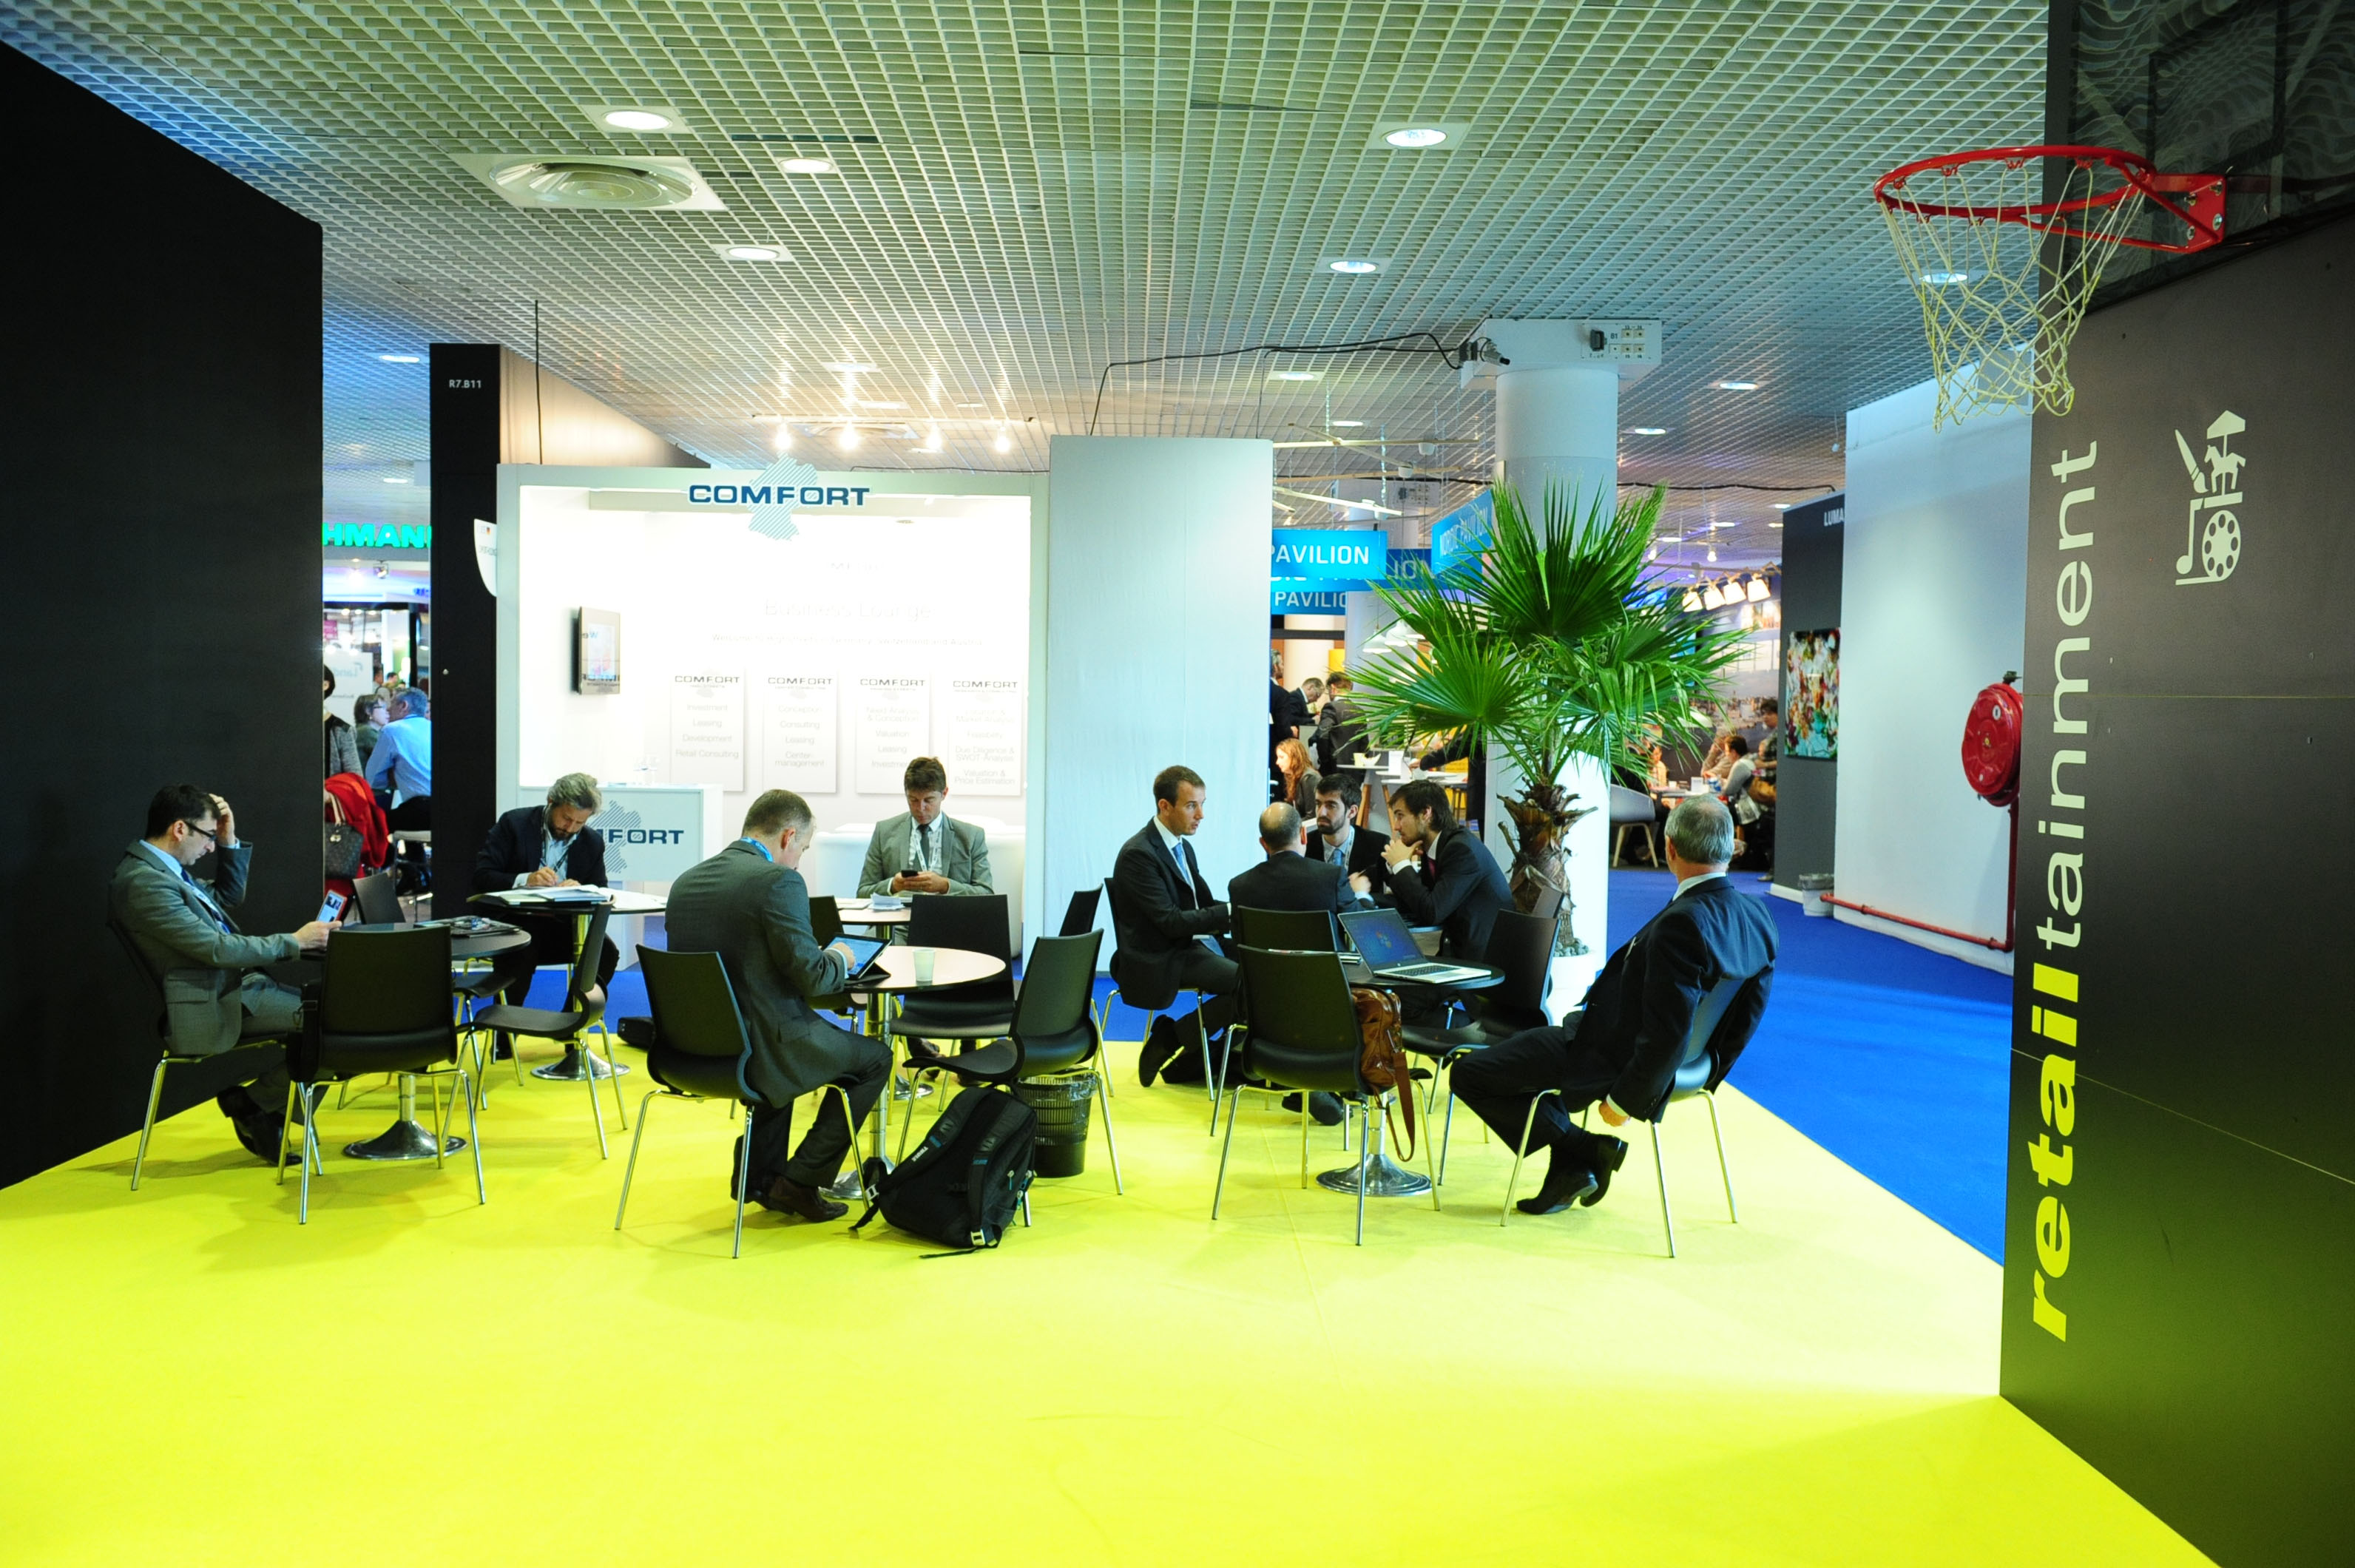 MAPIC 2014 - EXHIBITION AREA - RETAILTAINMENT PITCHING AREA